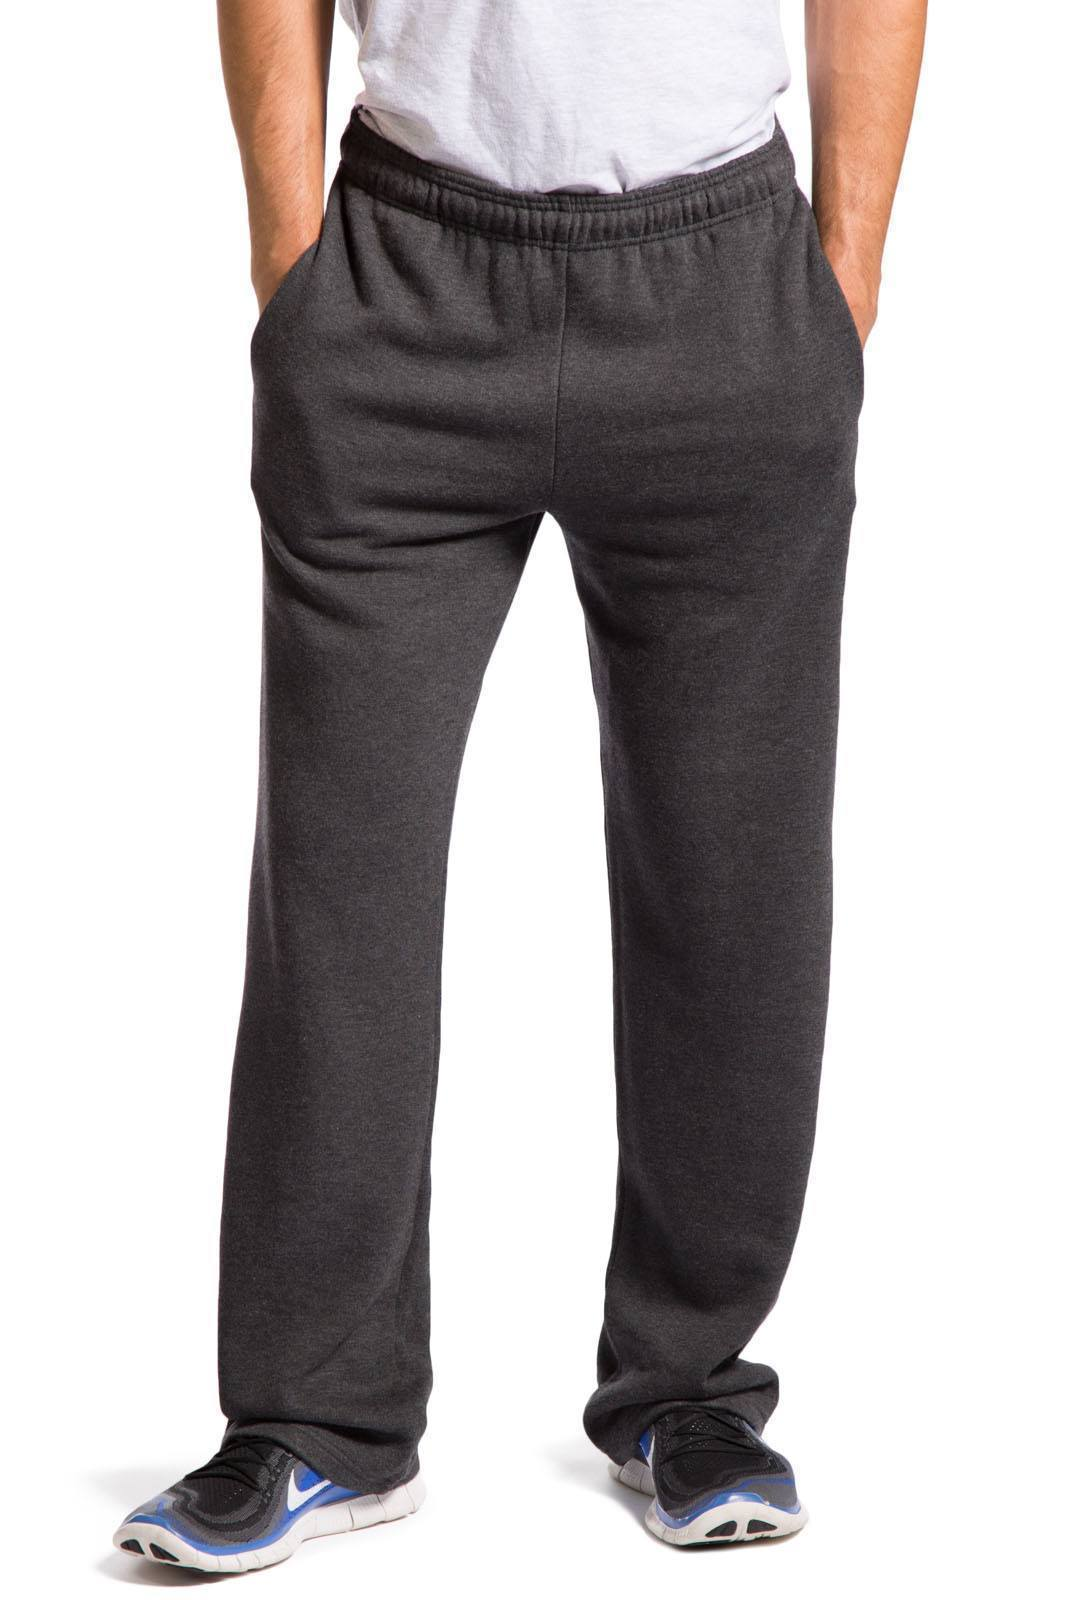 Shop for Men's Athletic Pants at qrqceh.tk Eligible for free shipping and free returns.